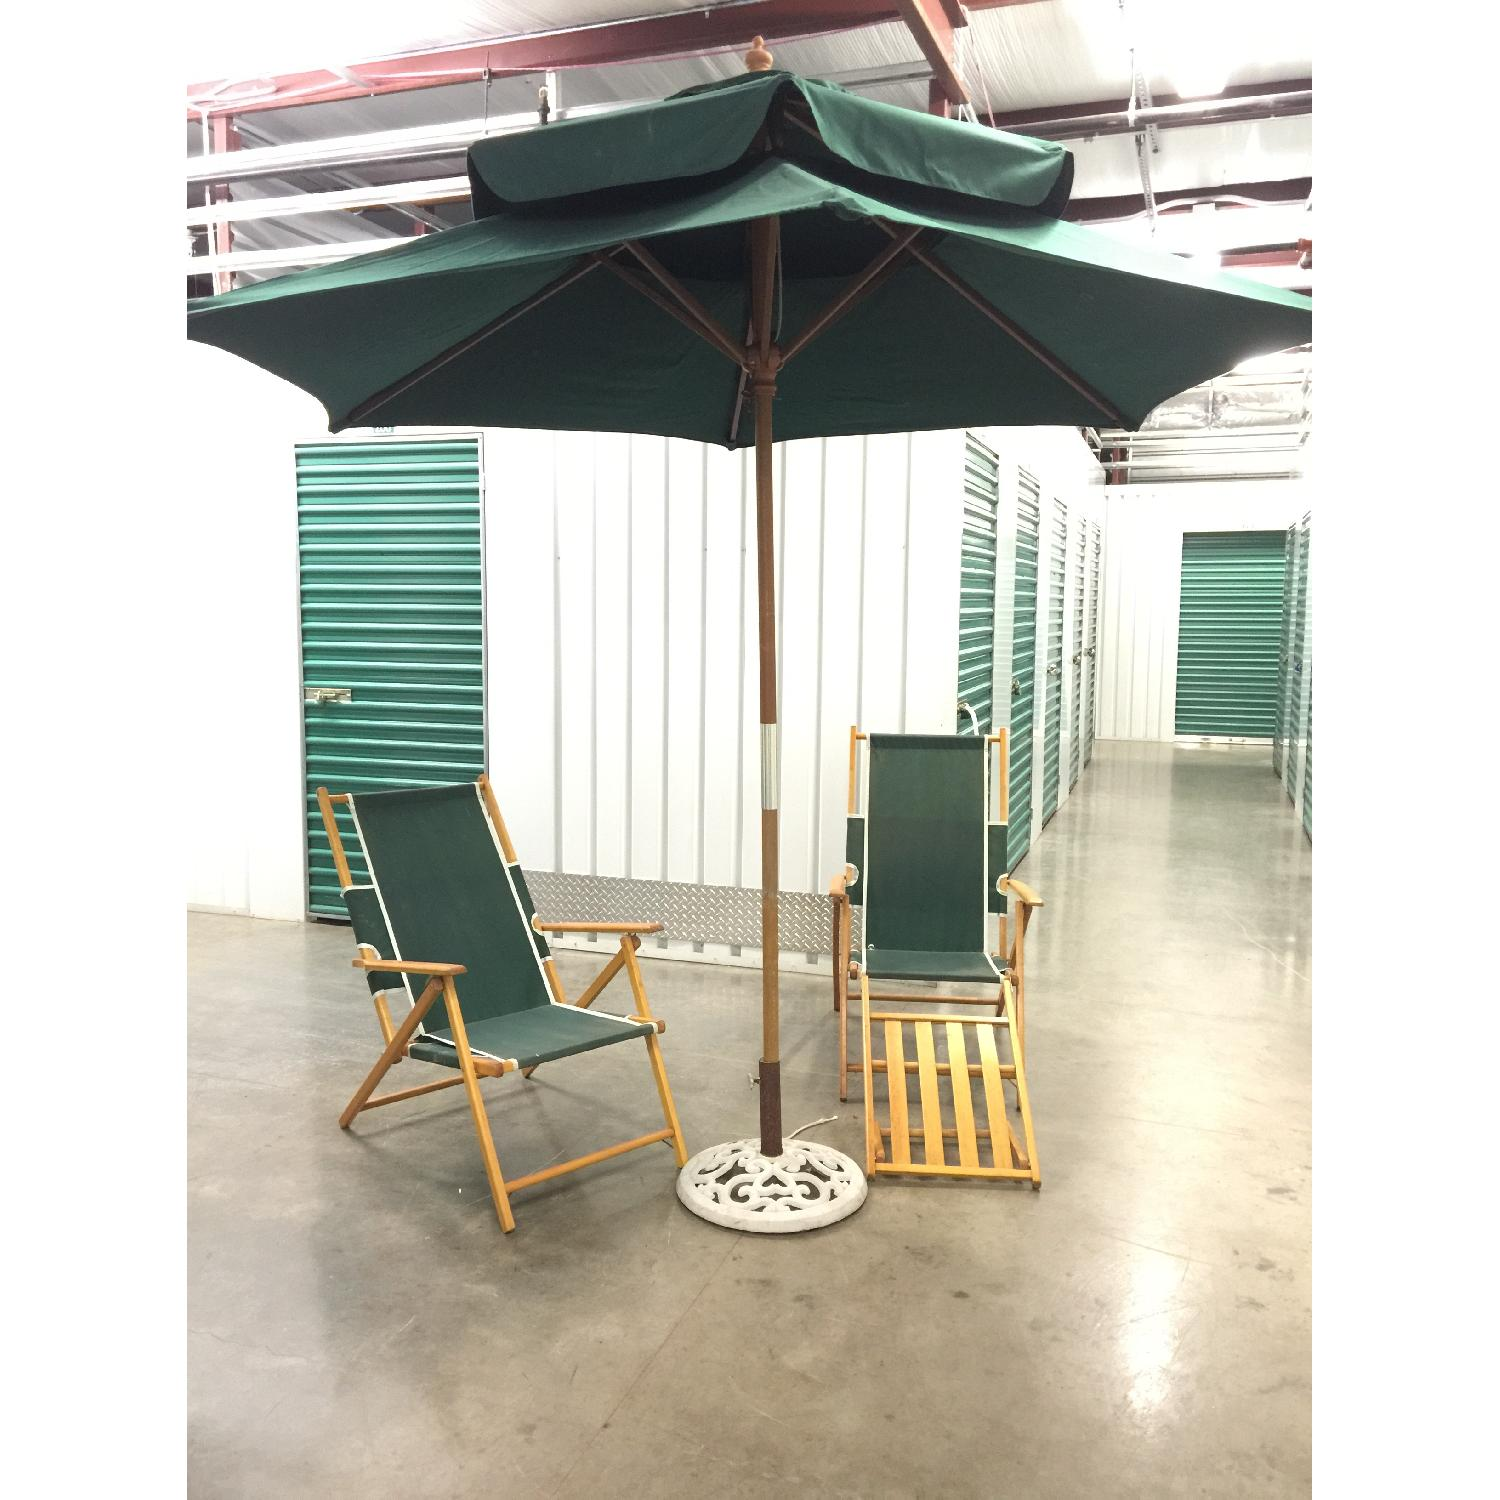 Fully Renovated Long Island Gold Coast Umbrella w/ 2 Folding Deckchairs - image-2